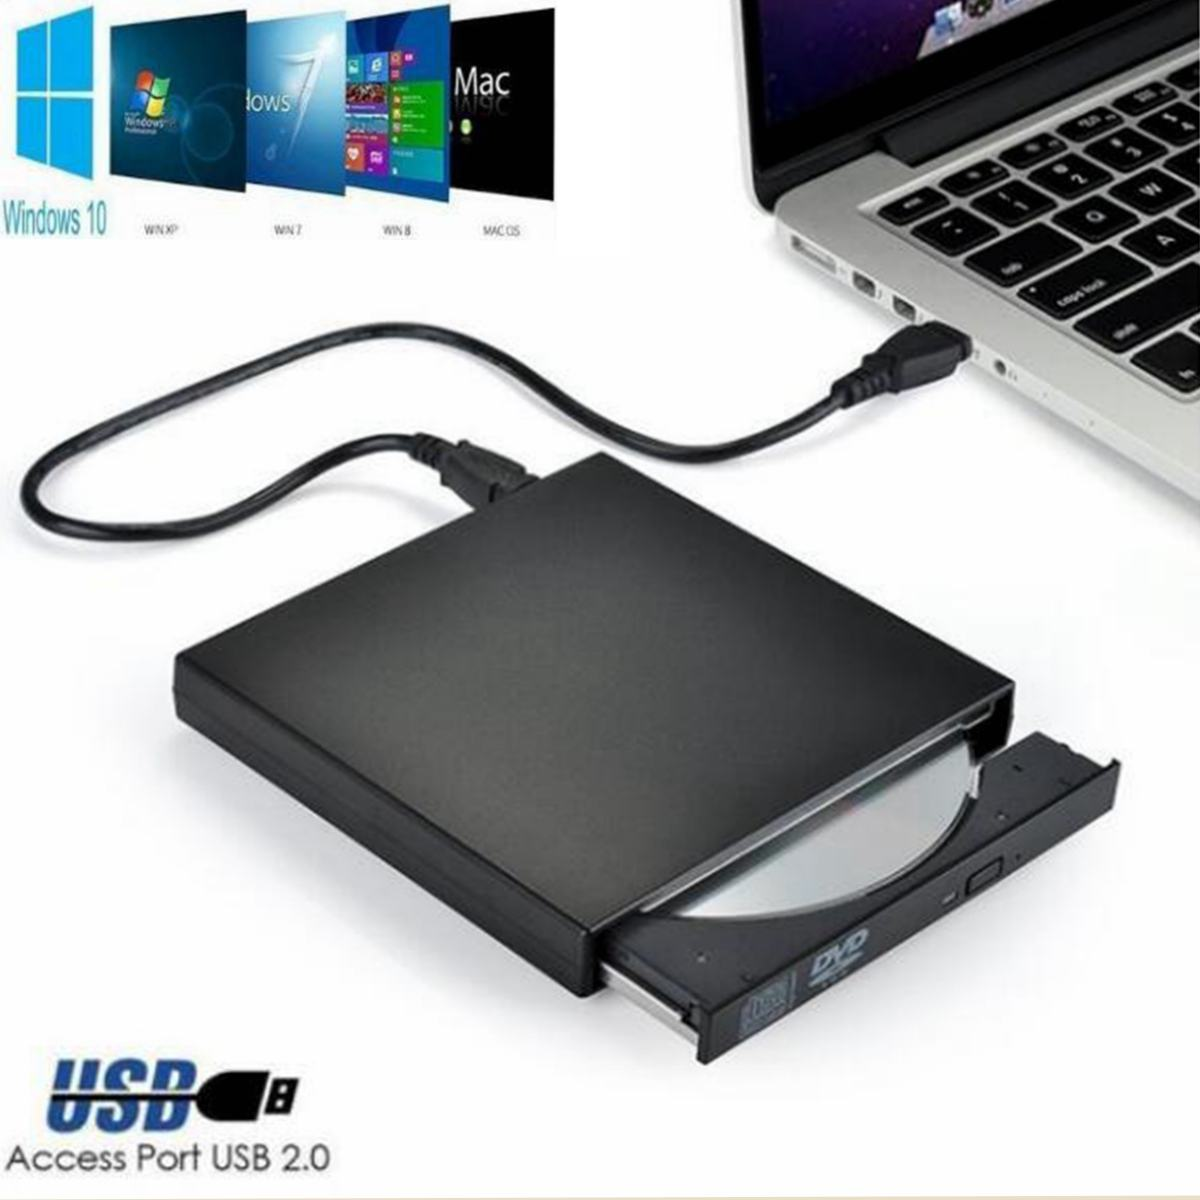 USB 2.0 External DVD ROM Player Reader CD RW Combo Burner Drive For Laptop PC Optical Drive Combo DVD/CD Burner CD/DVD-ROM CD-RW